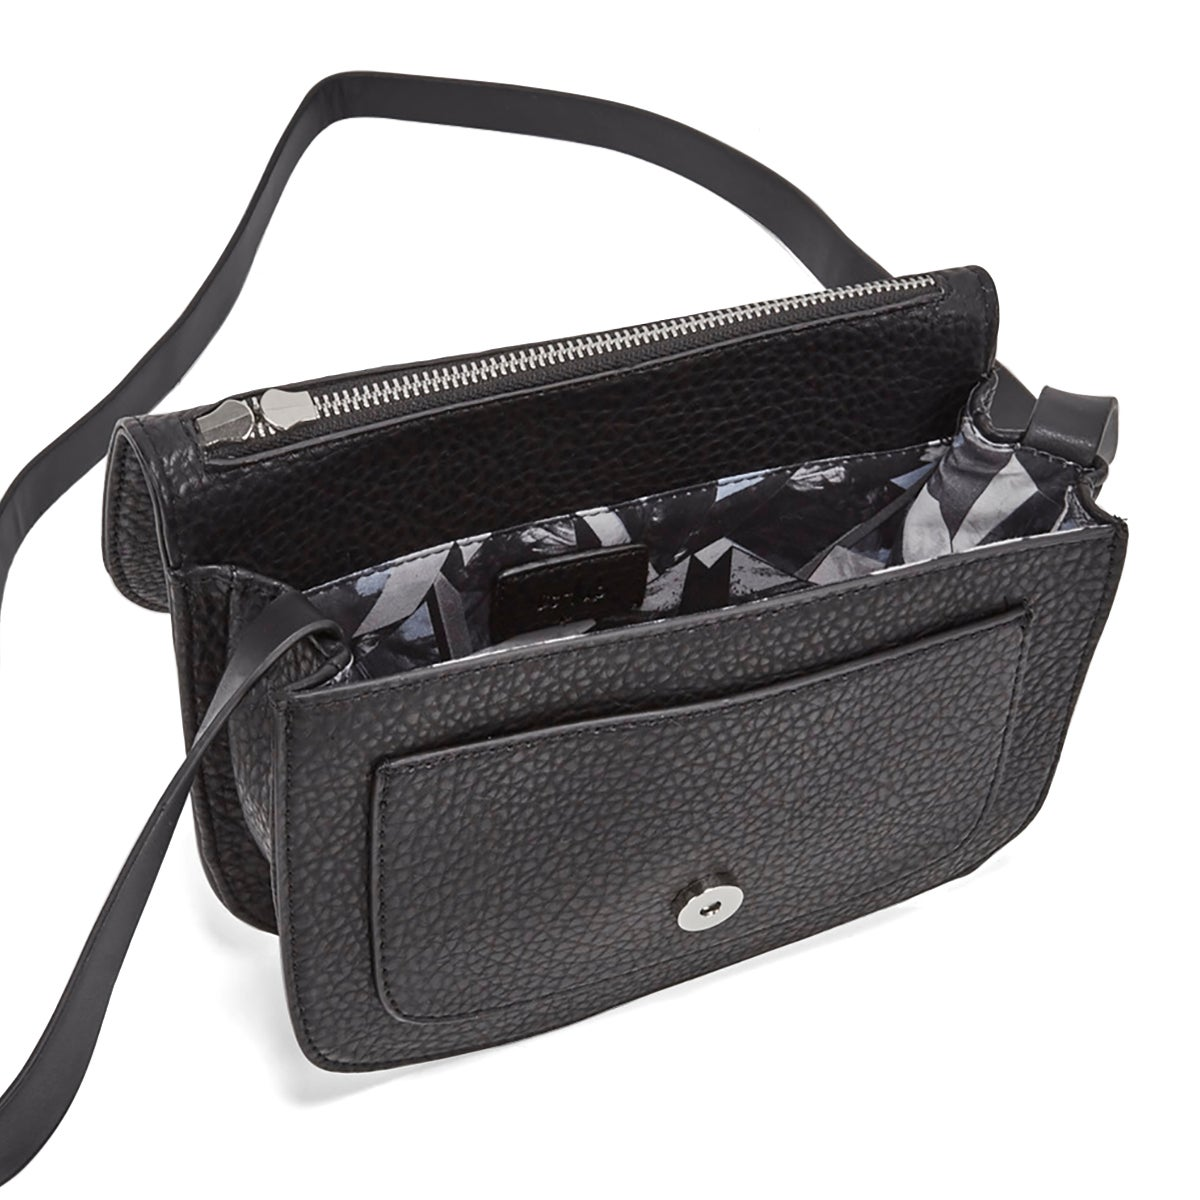 Lds Mini Saddle black cross body